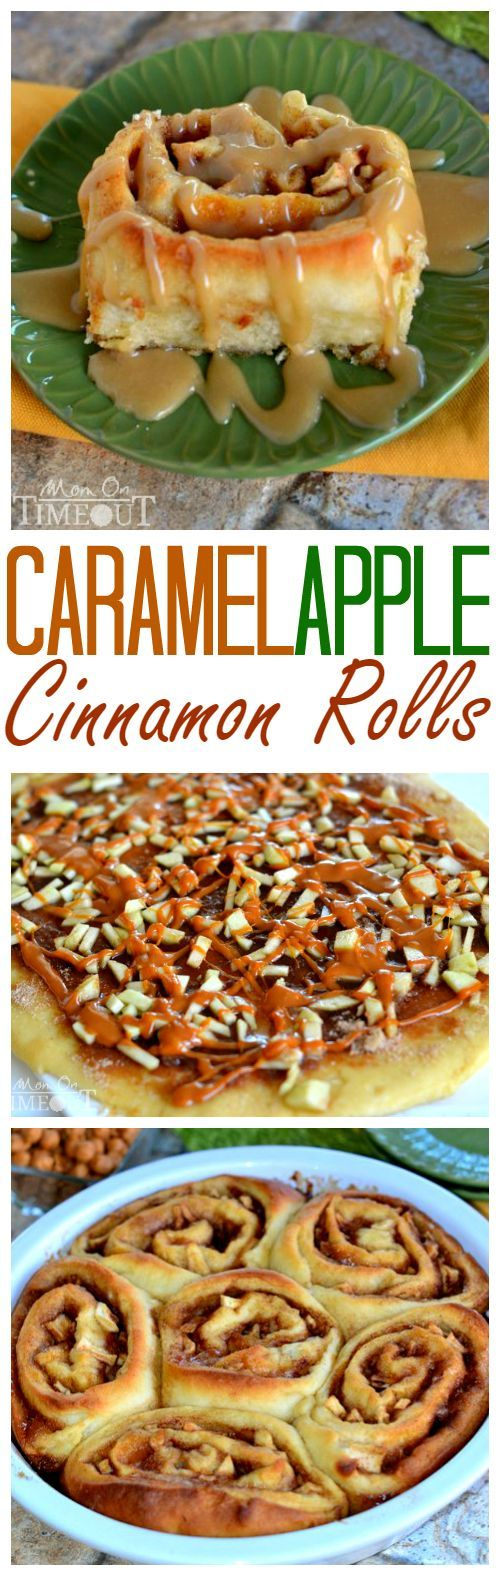 Craving caramel apples?  Try these Caramel Apple Cinnamon Rolls for a sweetly satisfying breakfast treat!  These gorgeous rolls are topped with a mouth-watering caramel icing and filled with Granny Smith apples and caramel.